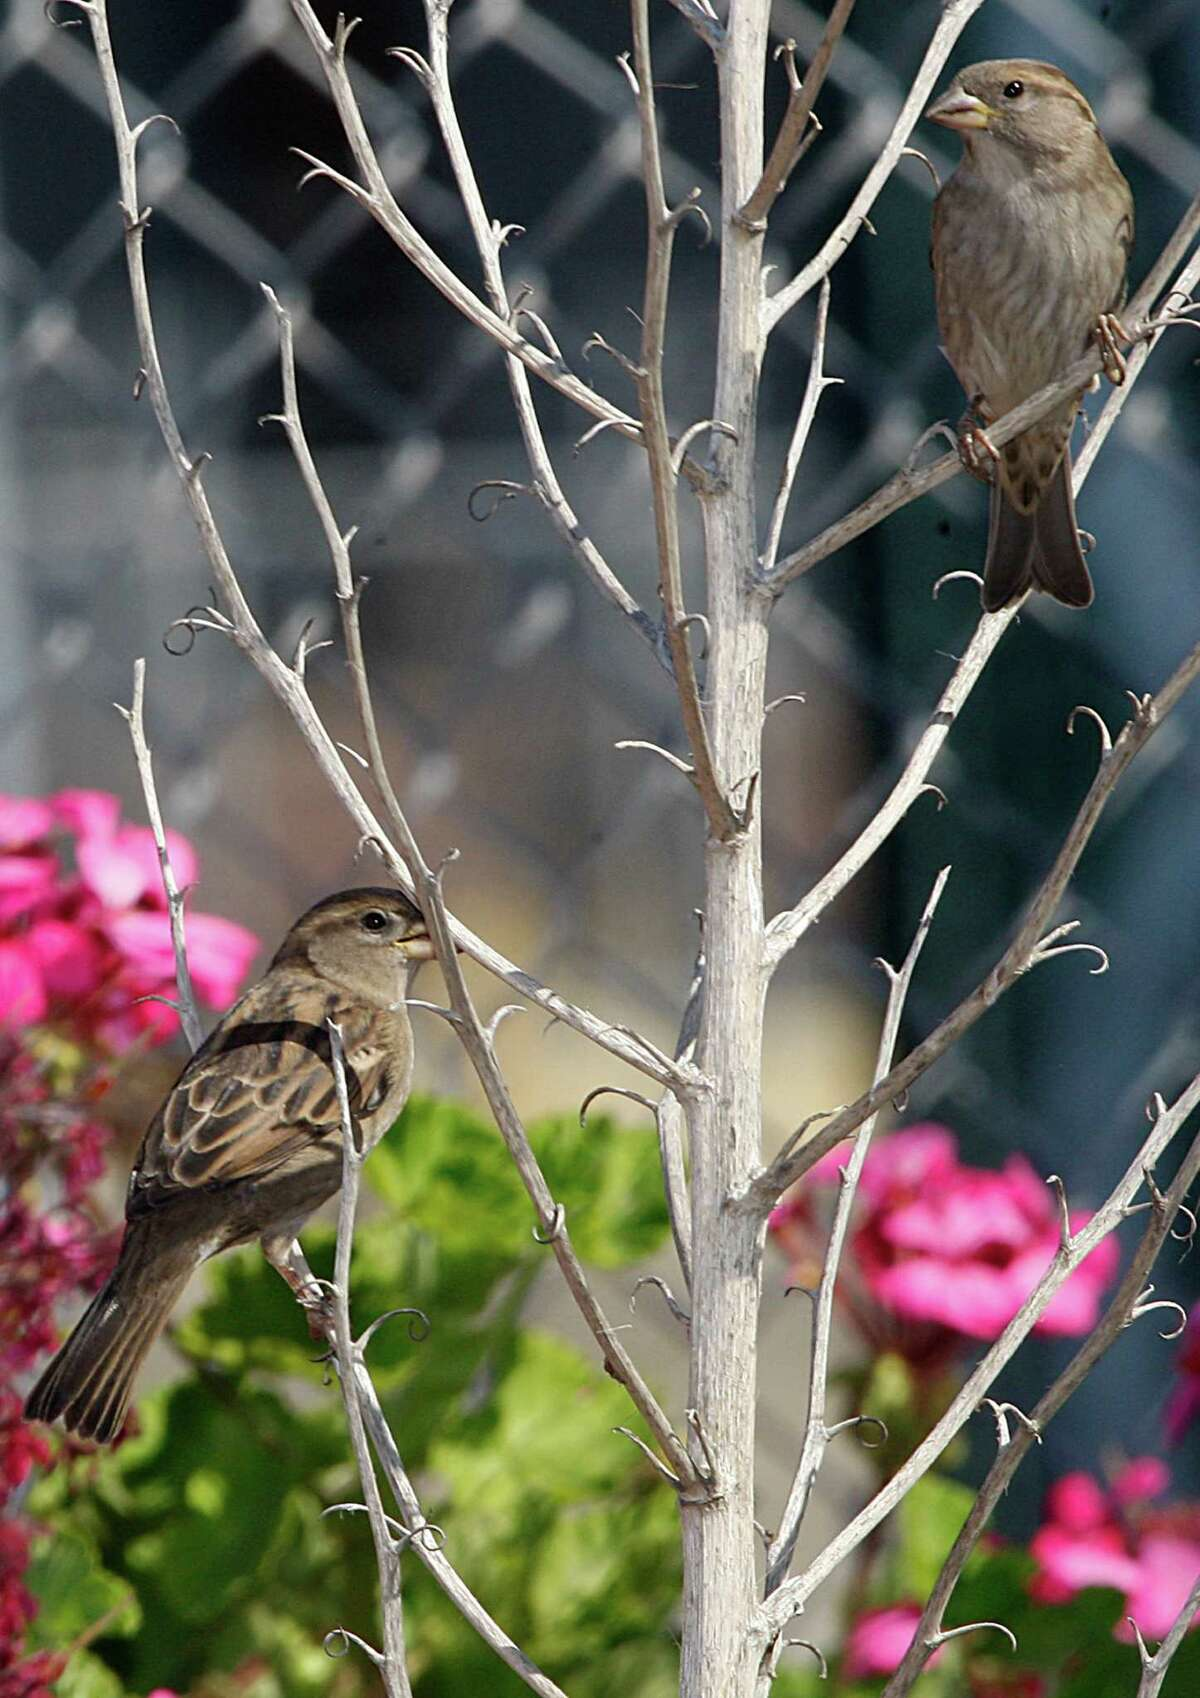 Sparrows hang out on plants at the old West Oakland train depot in Oakland, Calif., on Tuesday, October 7, 2014.